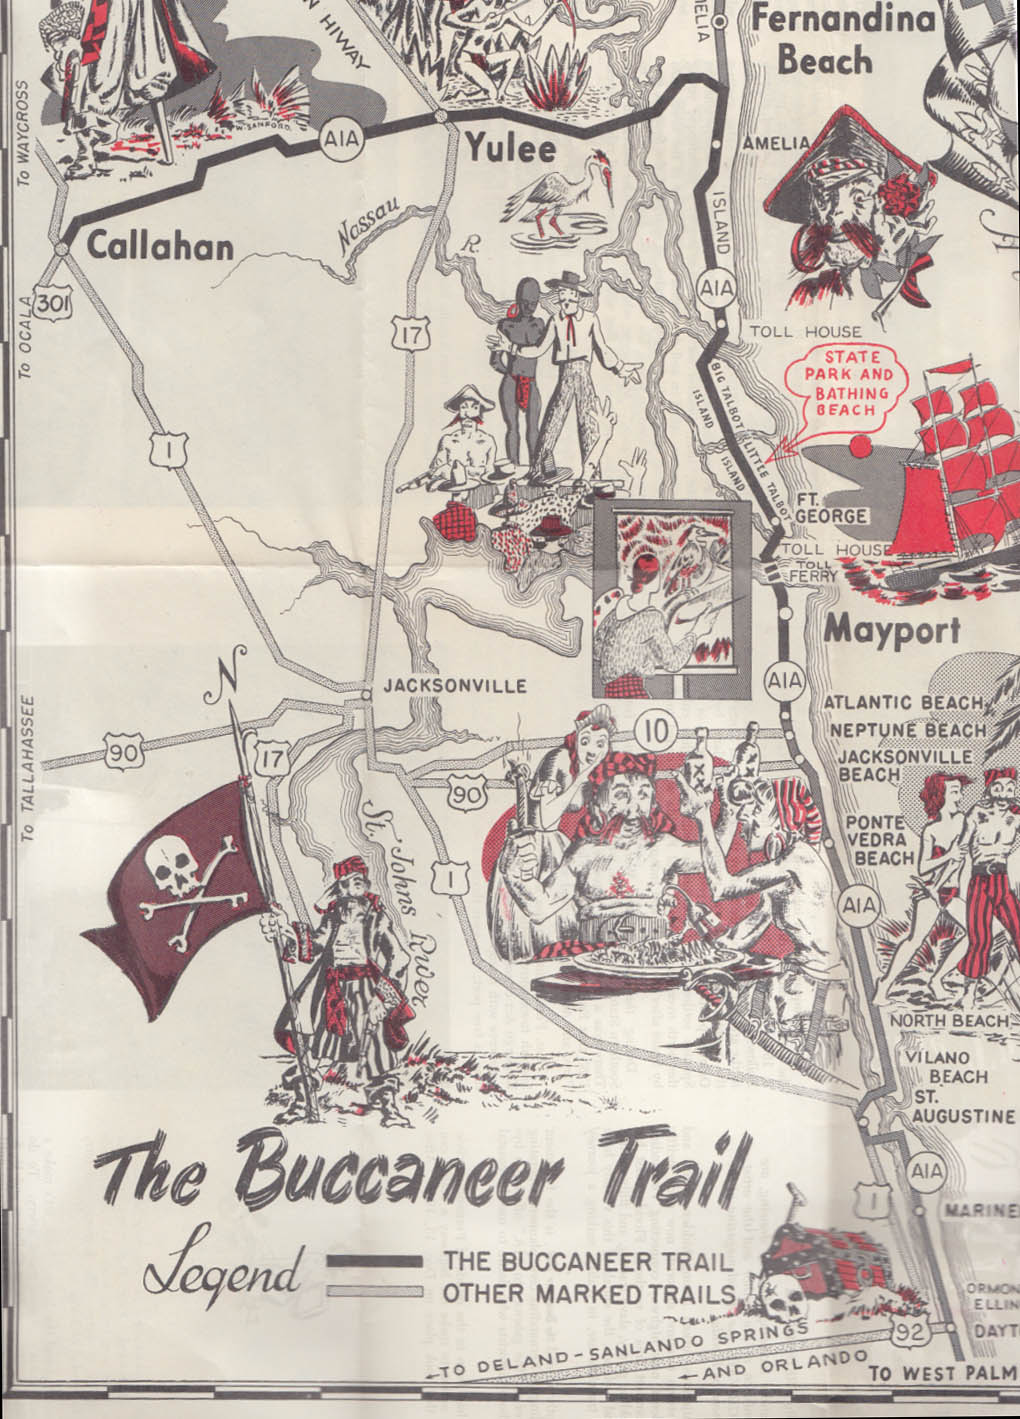 The Buccaneer Trail Florida Route A1A & St John's Ferry folder 1950s